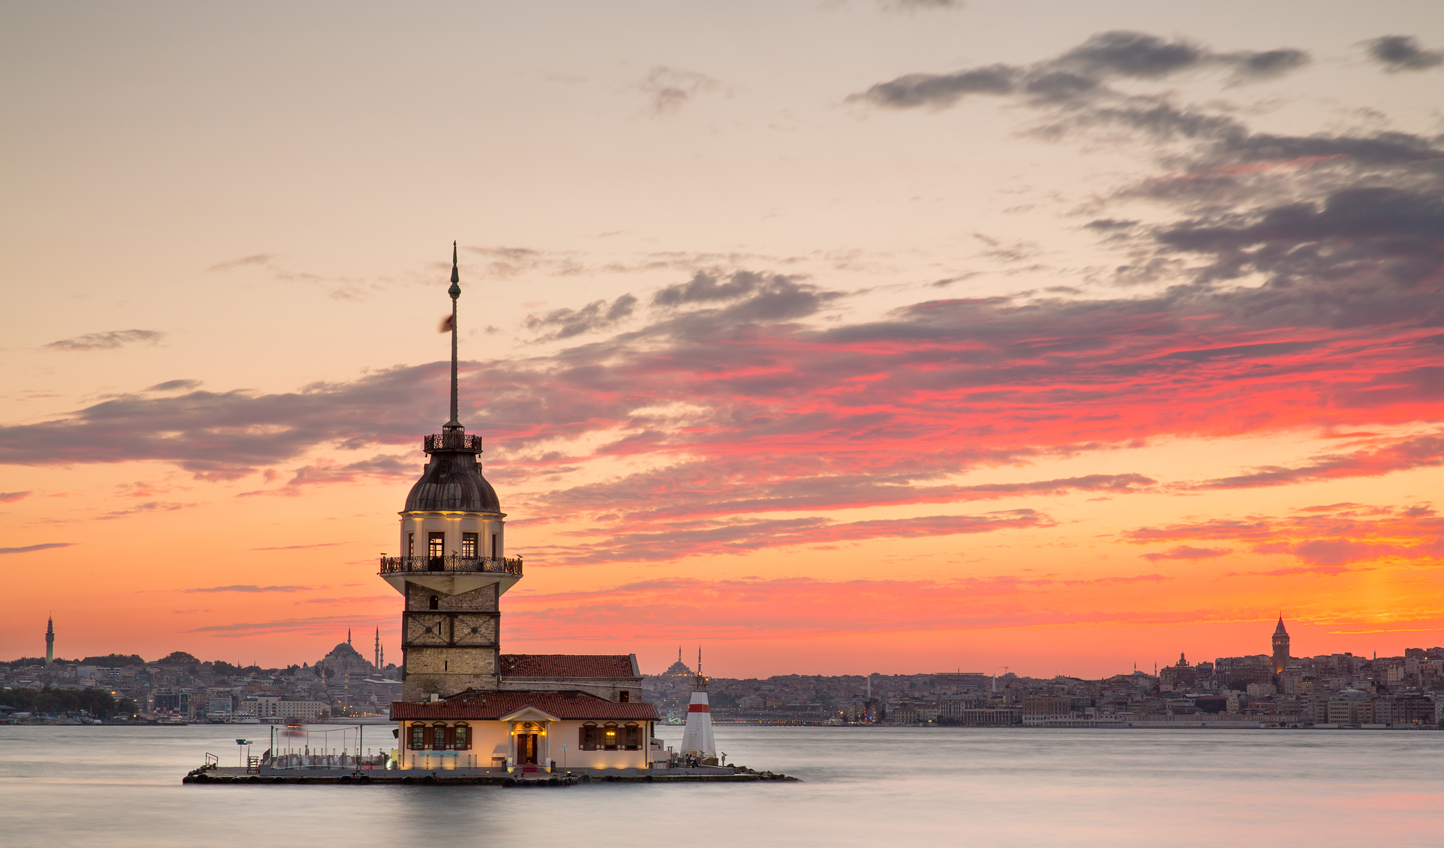 Sail down to Maiden's Tower